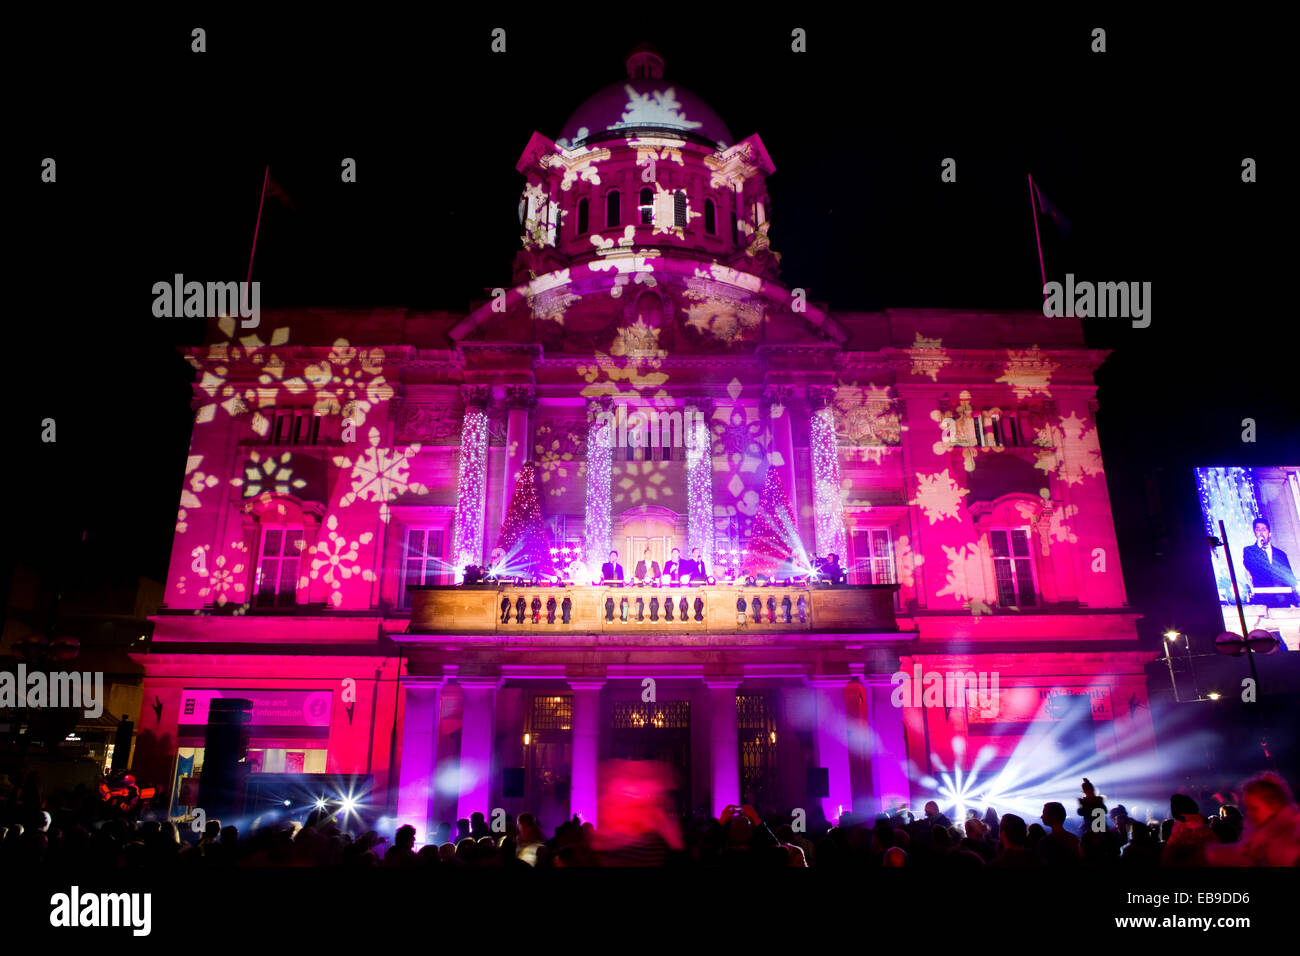 Hull, UK. 27th Nov, 2014. The Christmas lights switch-on event at the City Hall in Queen Victoria Square, Hull, - Stock Image